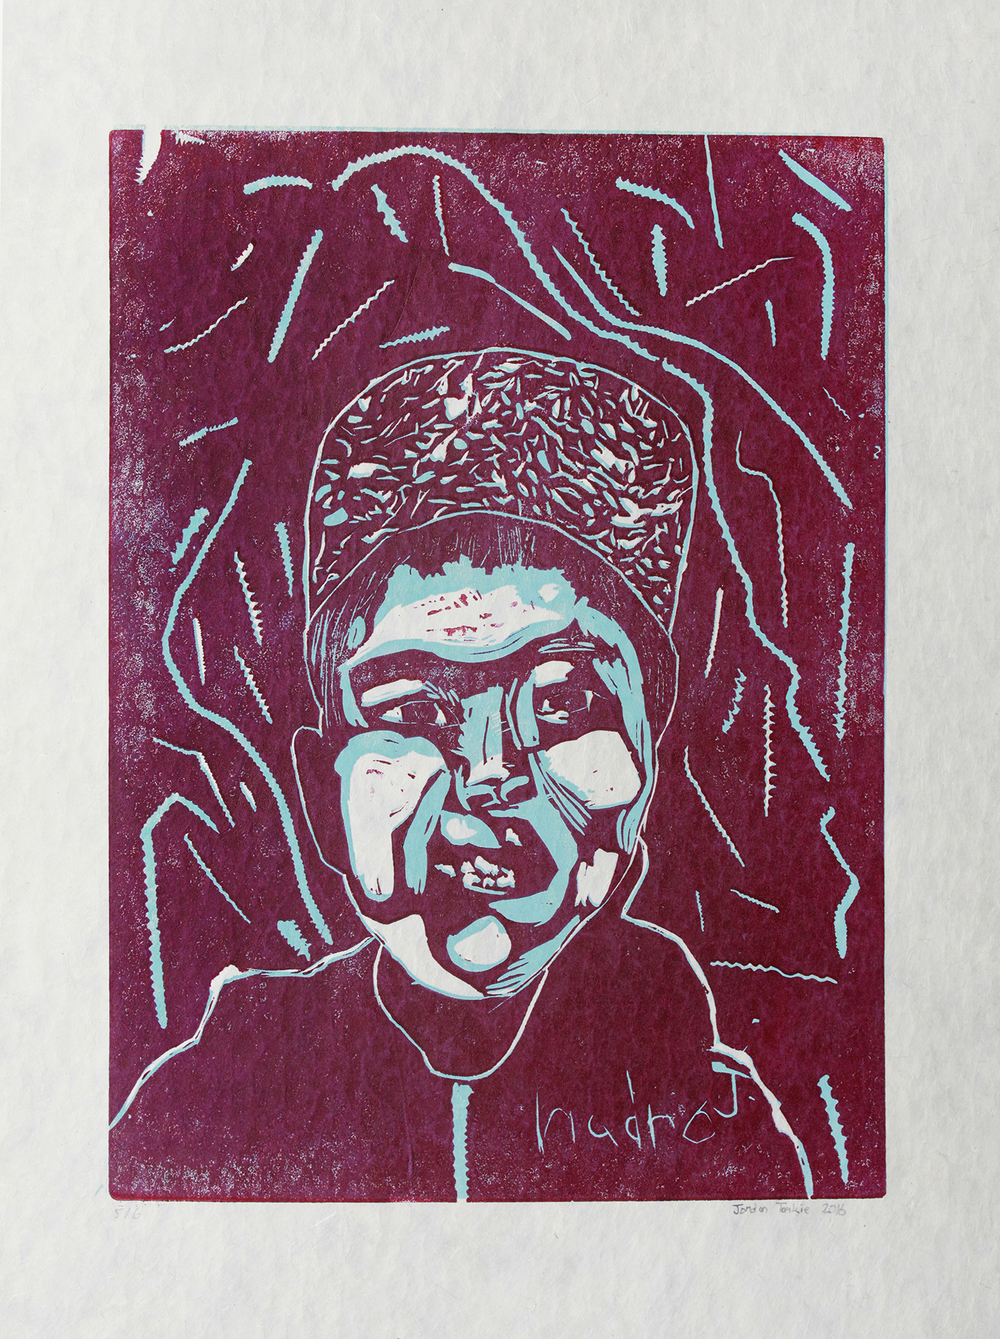 Uvanga: Self-Portrait   Jordan Taukie  Two-Layer Linocut Print on Washi  15.5 x 21.5""